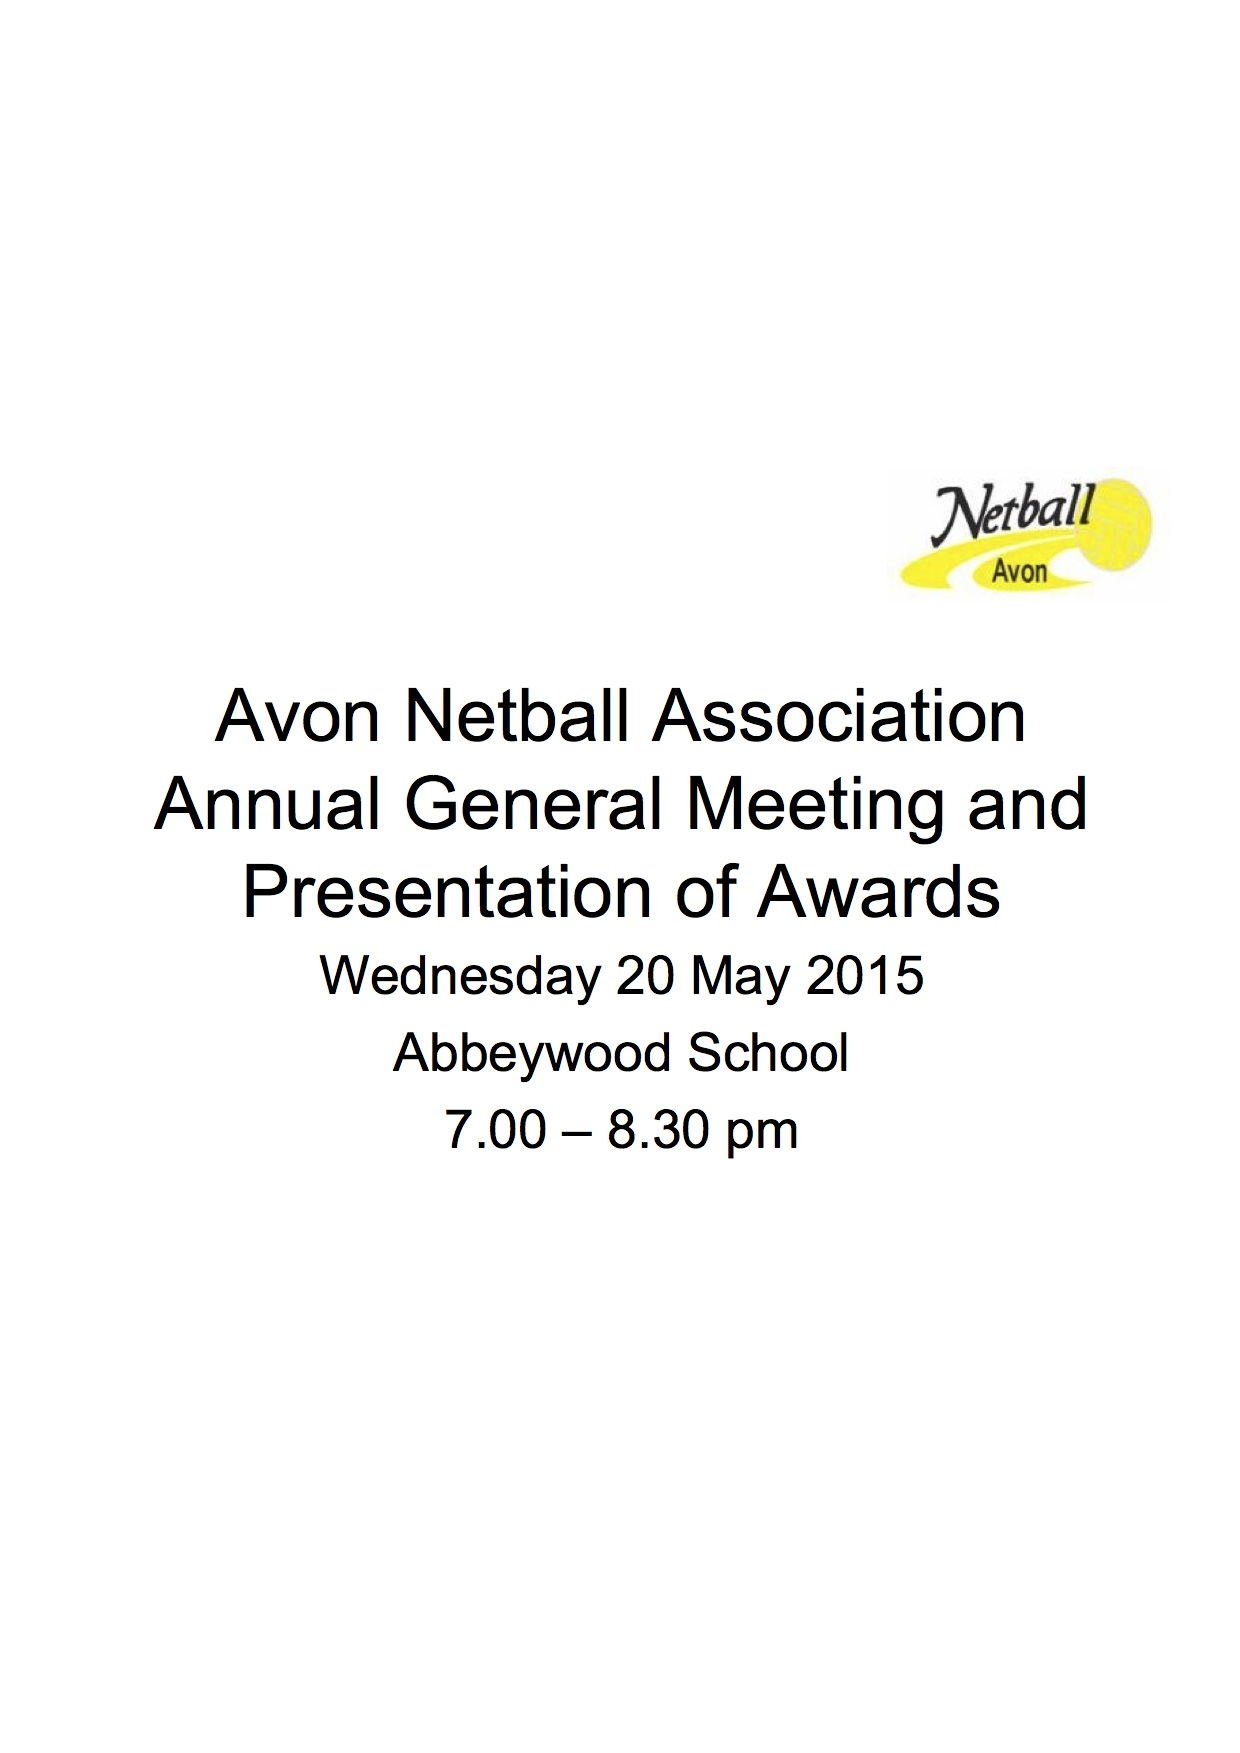 Avon Netball AGM 20 May 2015 page 1